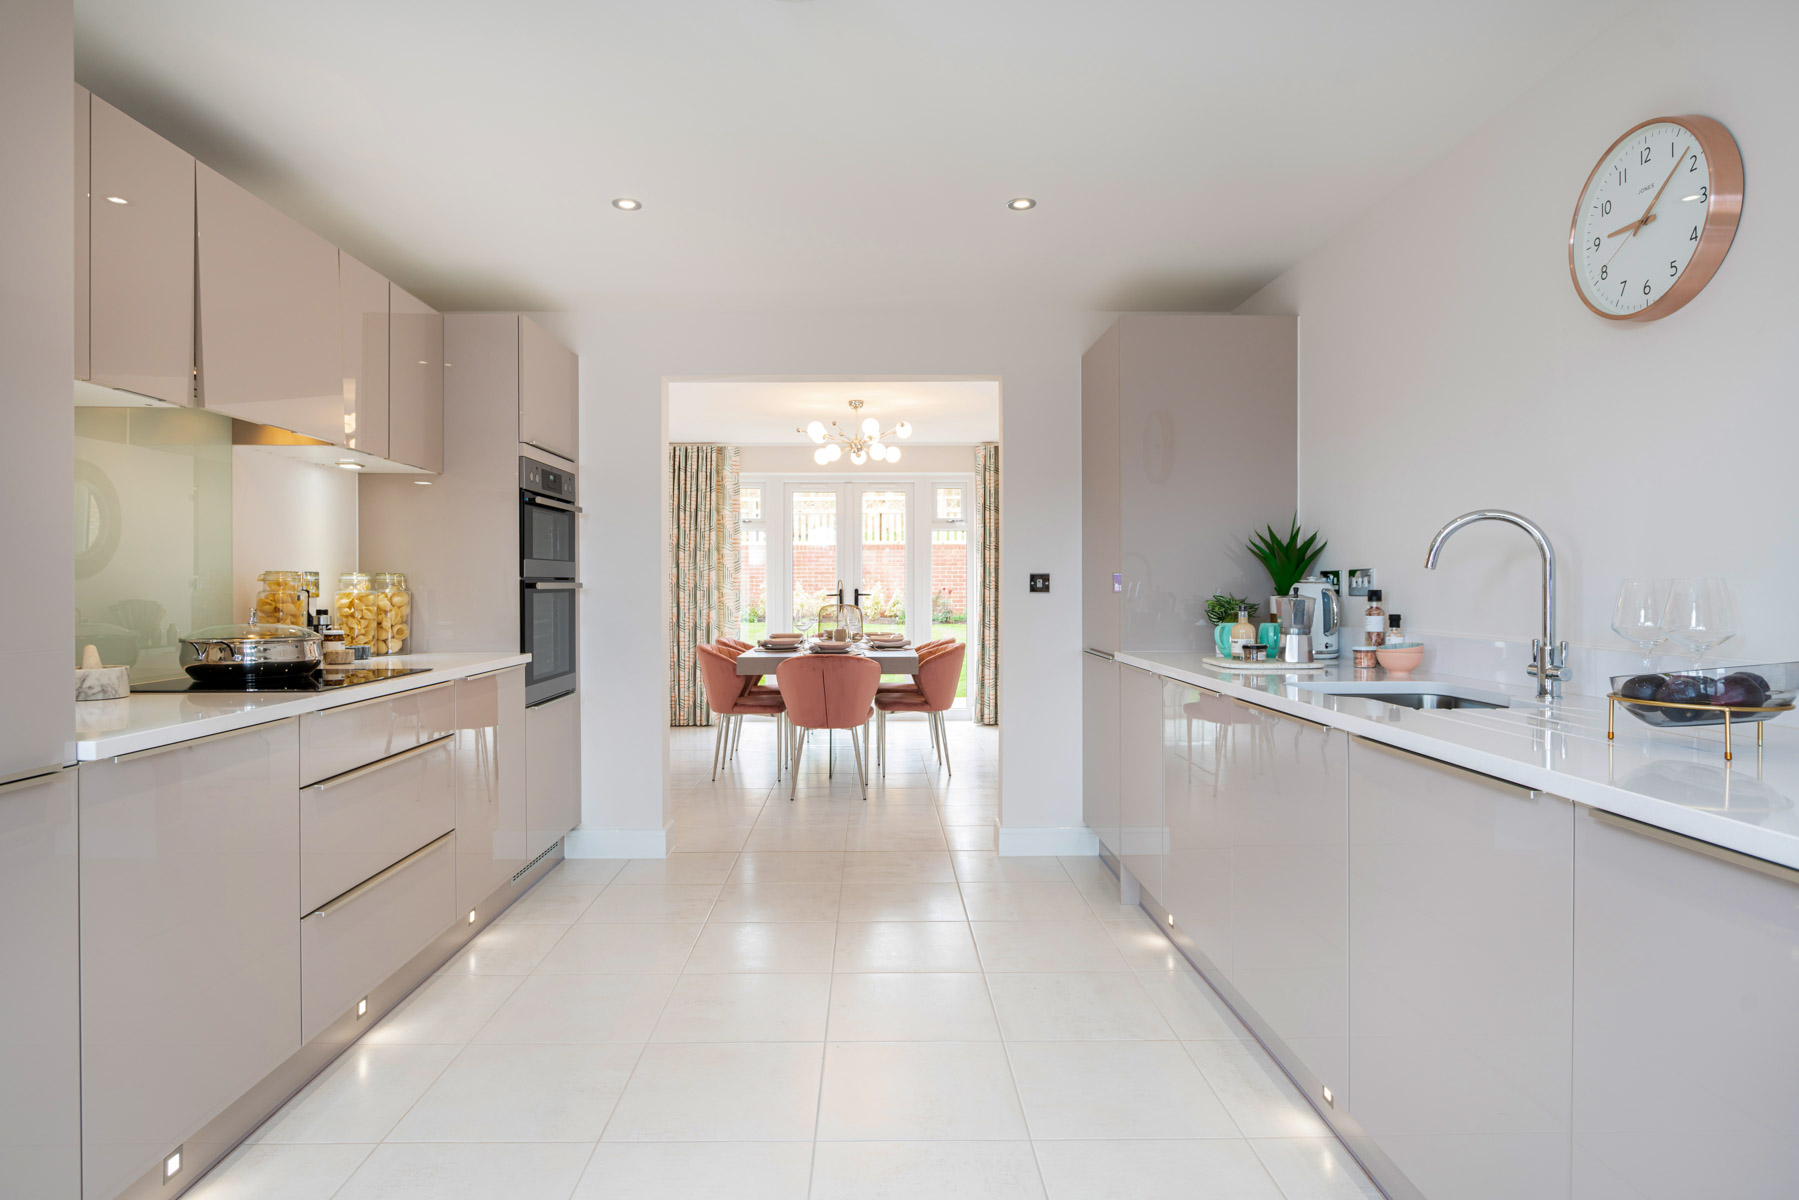 Taylor Wimpey - Mayfield Gardens - Marford kitchen 4